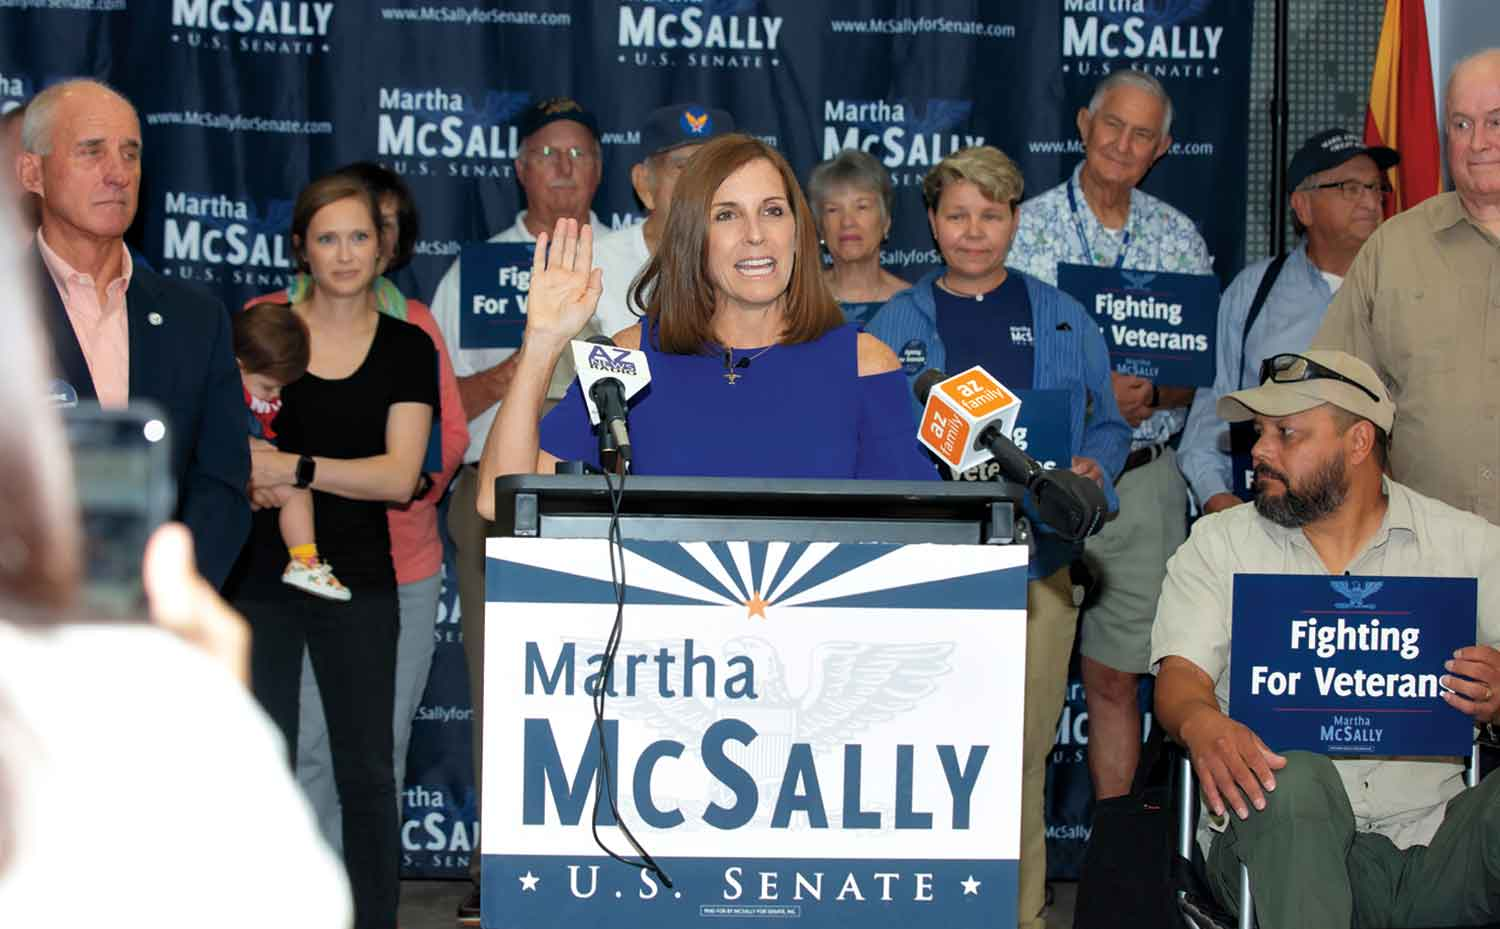 McSally at a Veterans conference in August; Photo by Carrie Evans